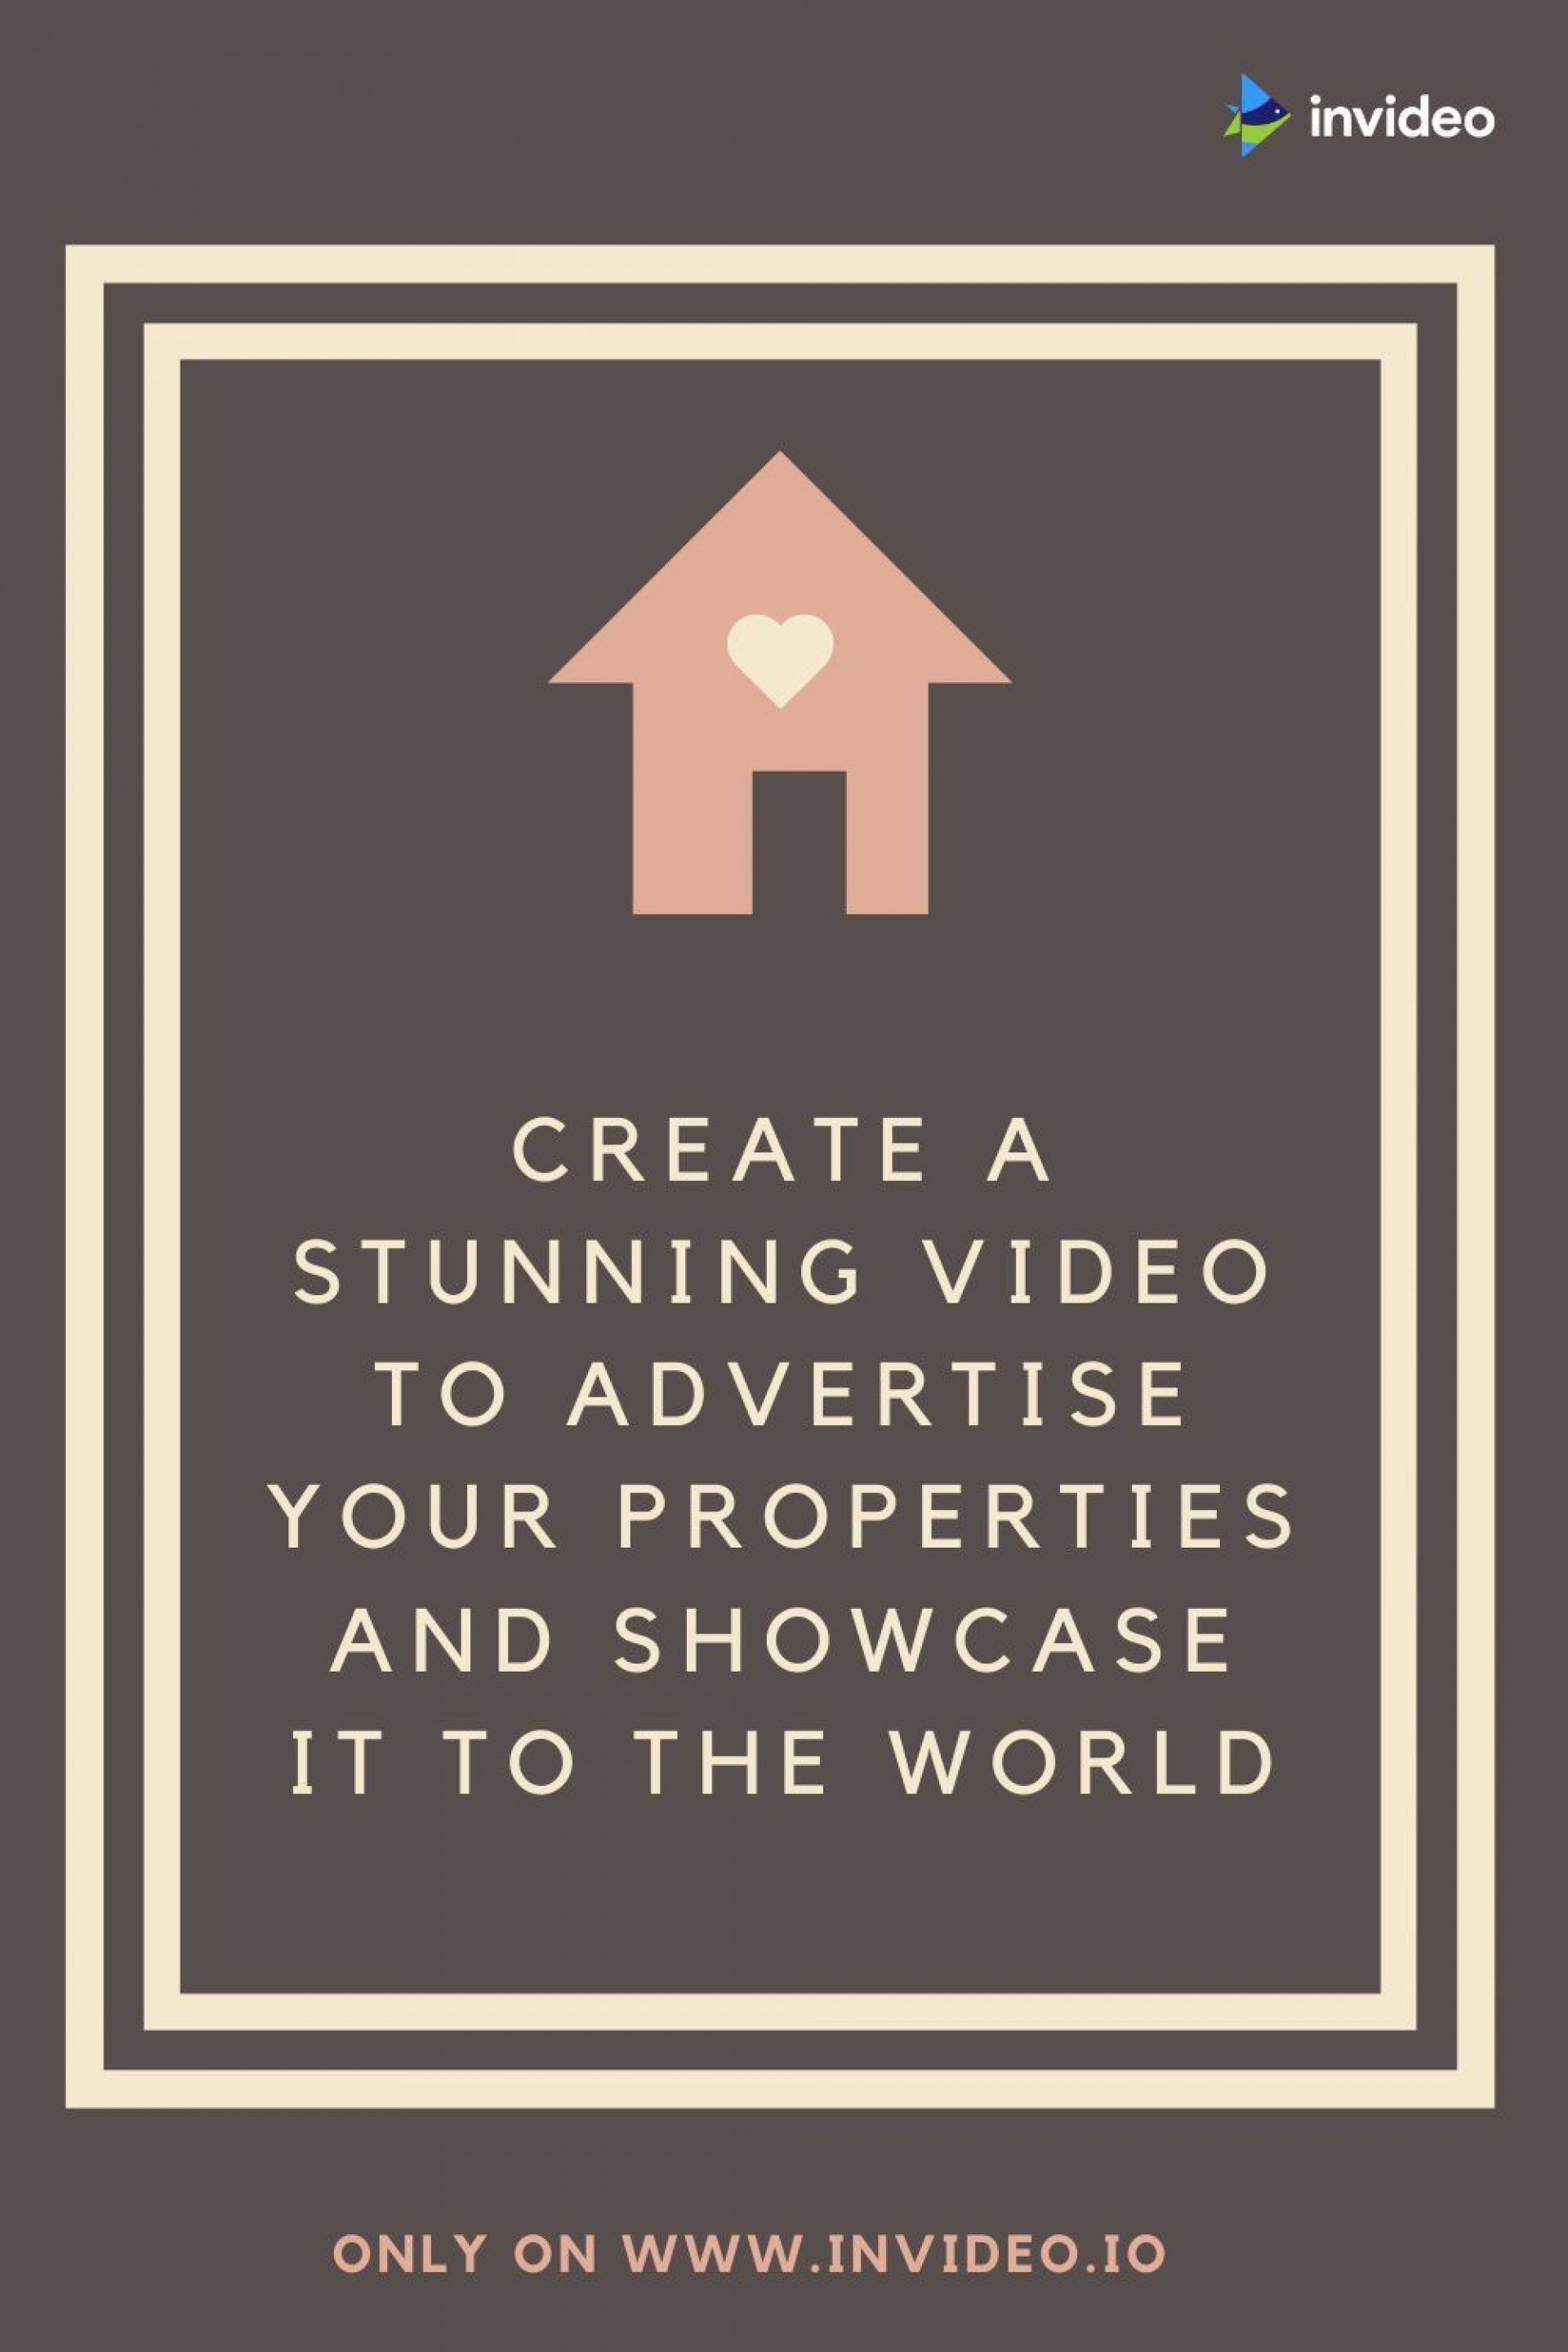 002 Archaicawful Real Estate Marketing Video Template Idea  Templates1920